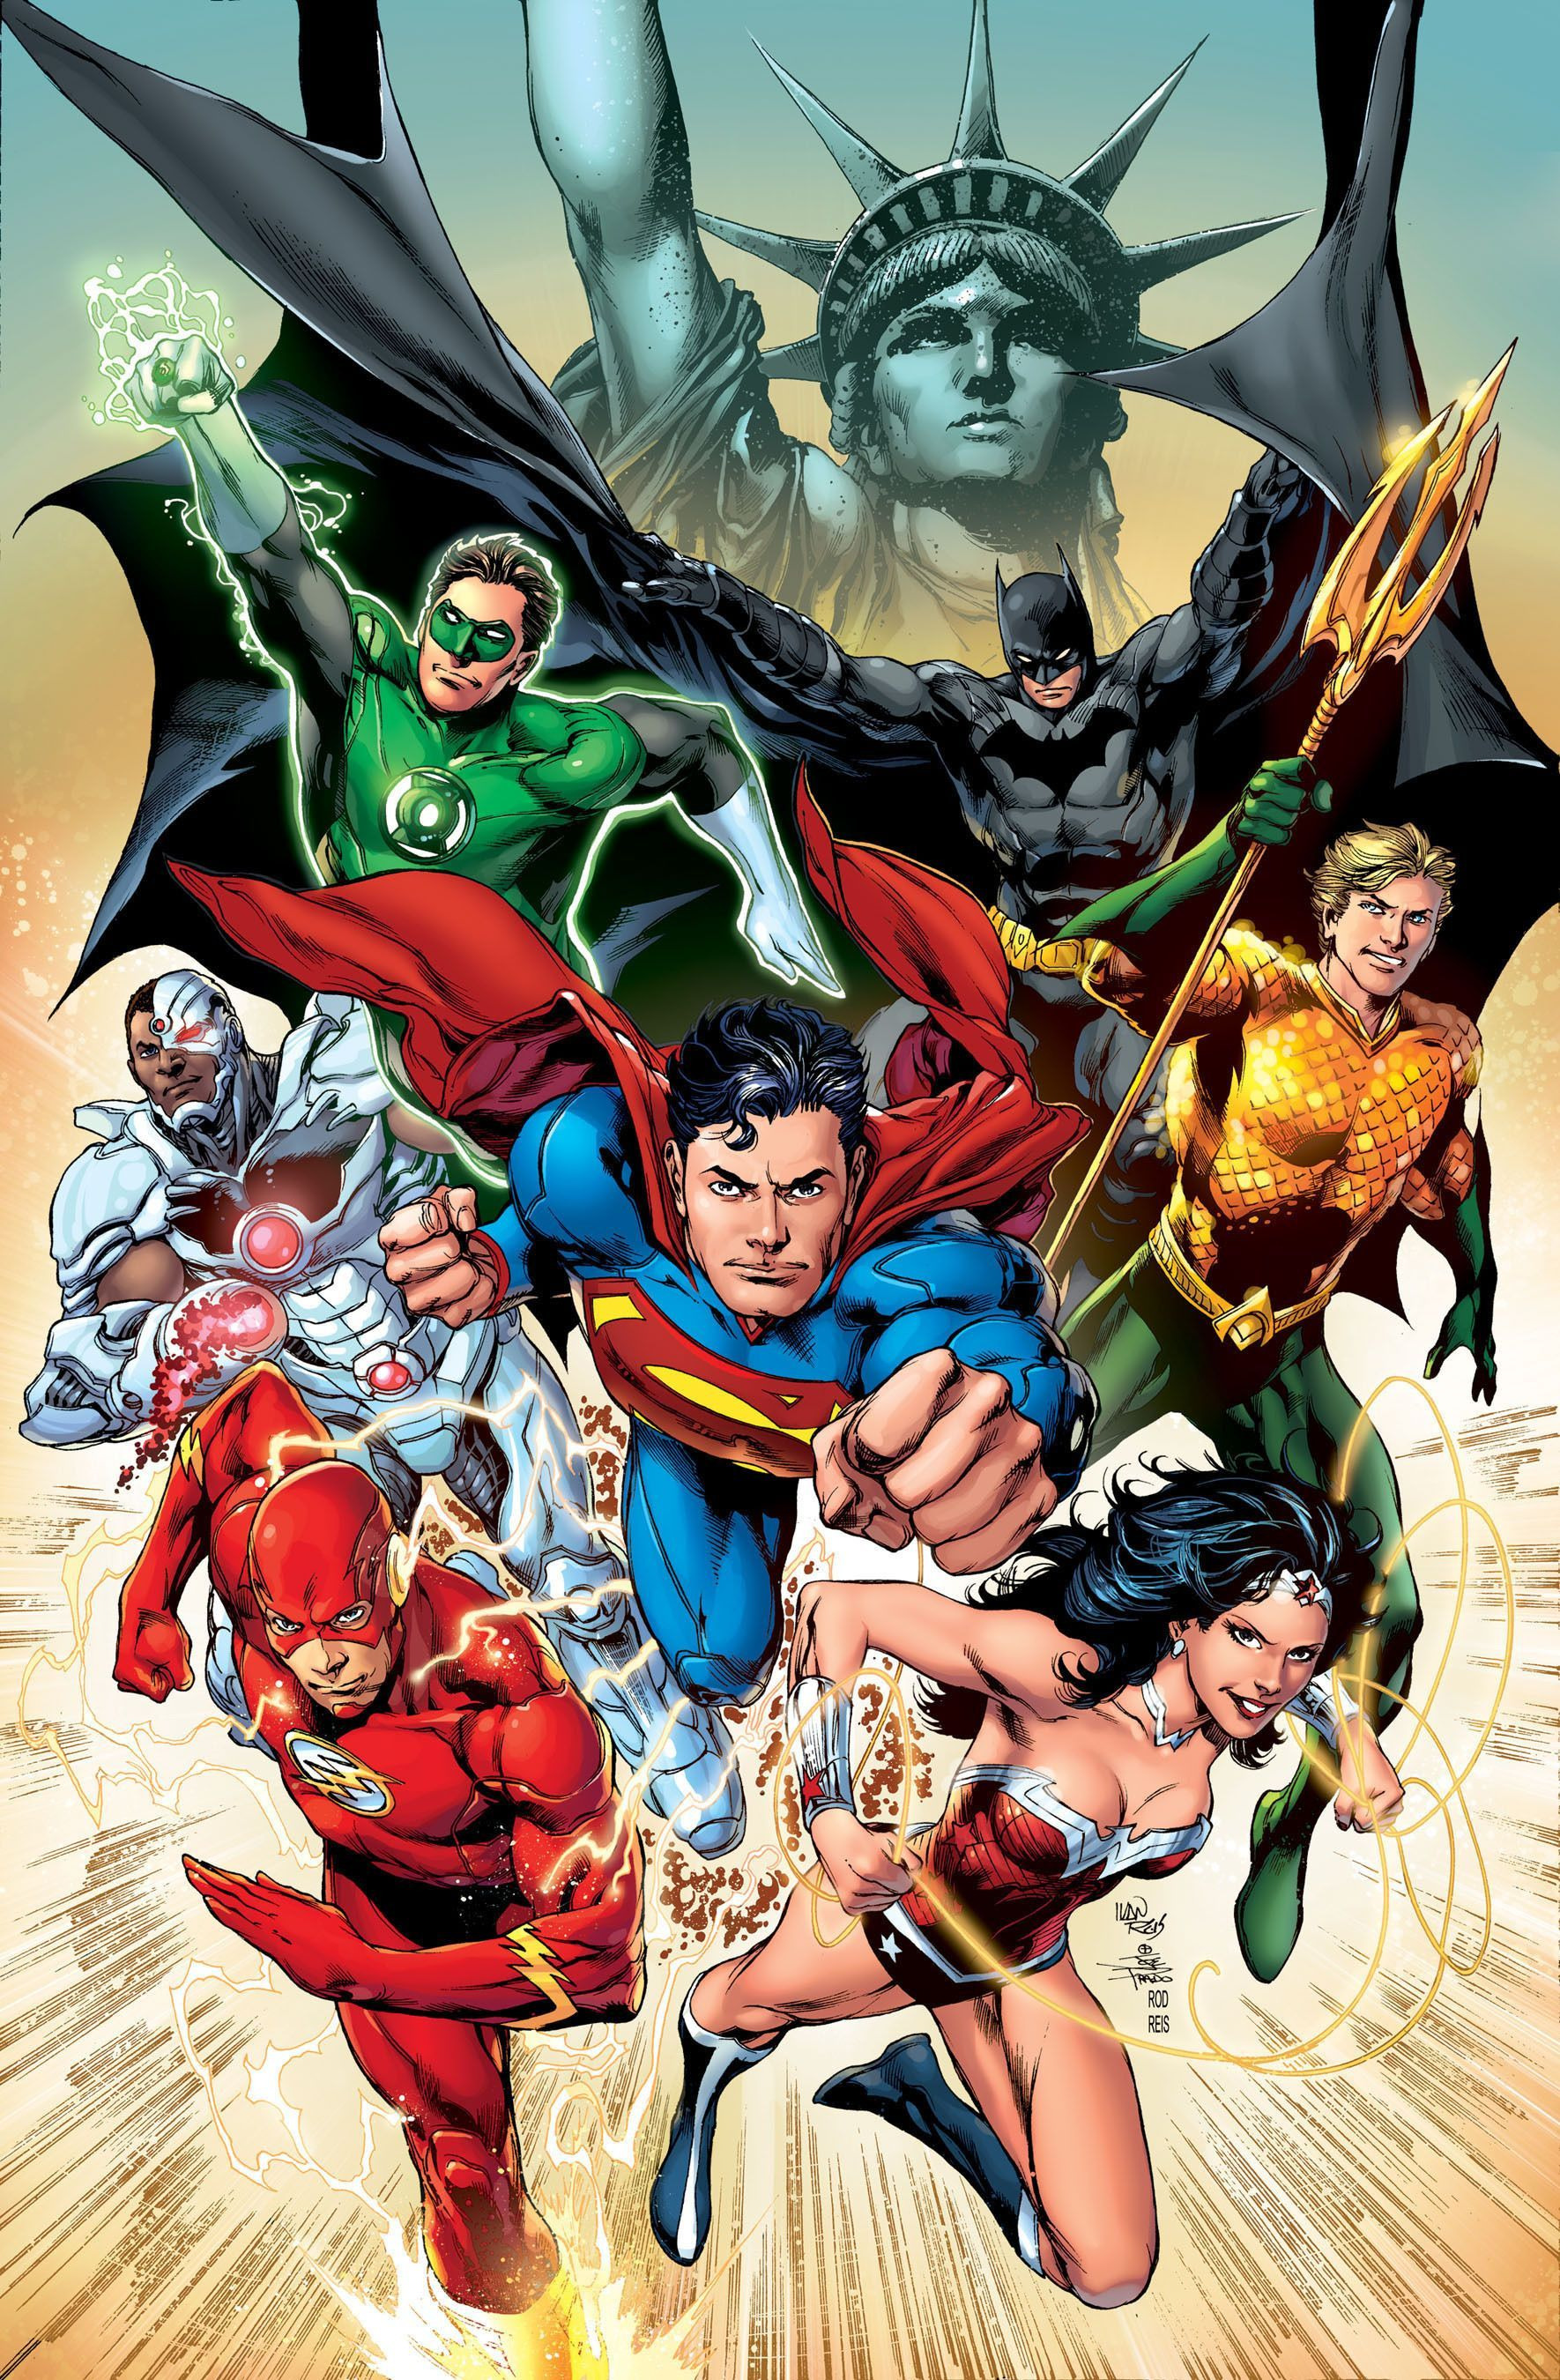 8fba485f5f Justice League - Batman - Hal Jordan - Green Lantern - Barry Allen - Flash  - Cyborg - Superman - Aquaman - Wonder Woman - Cover